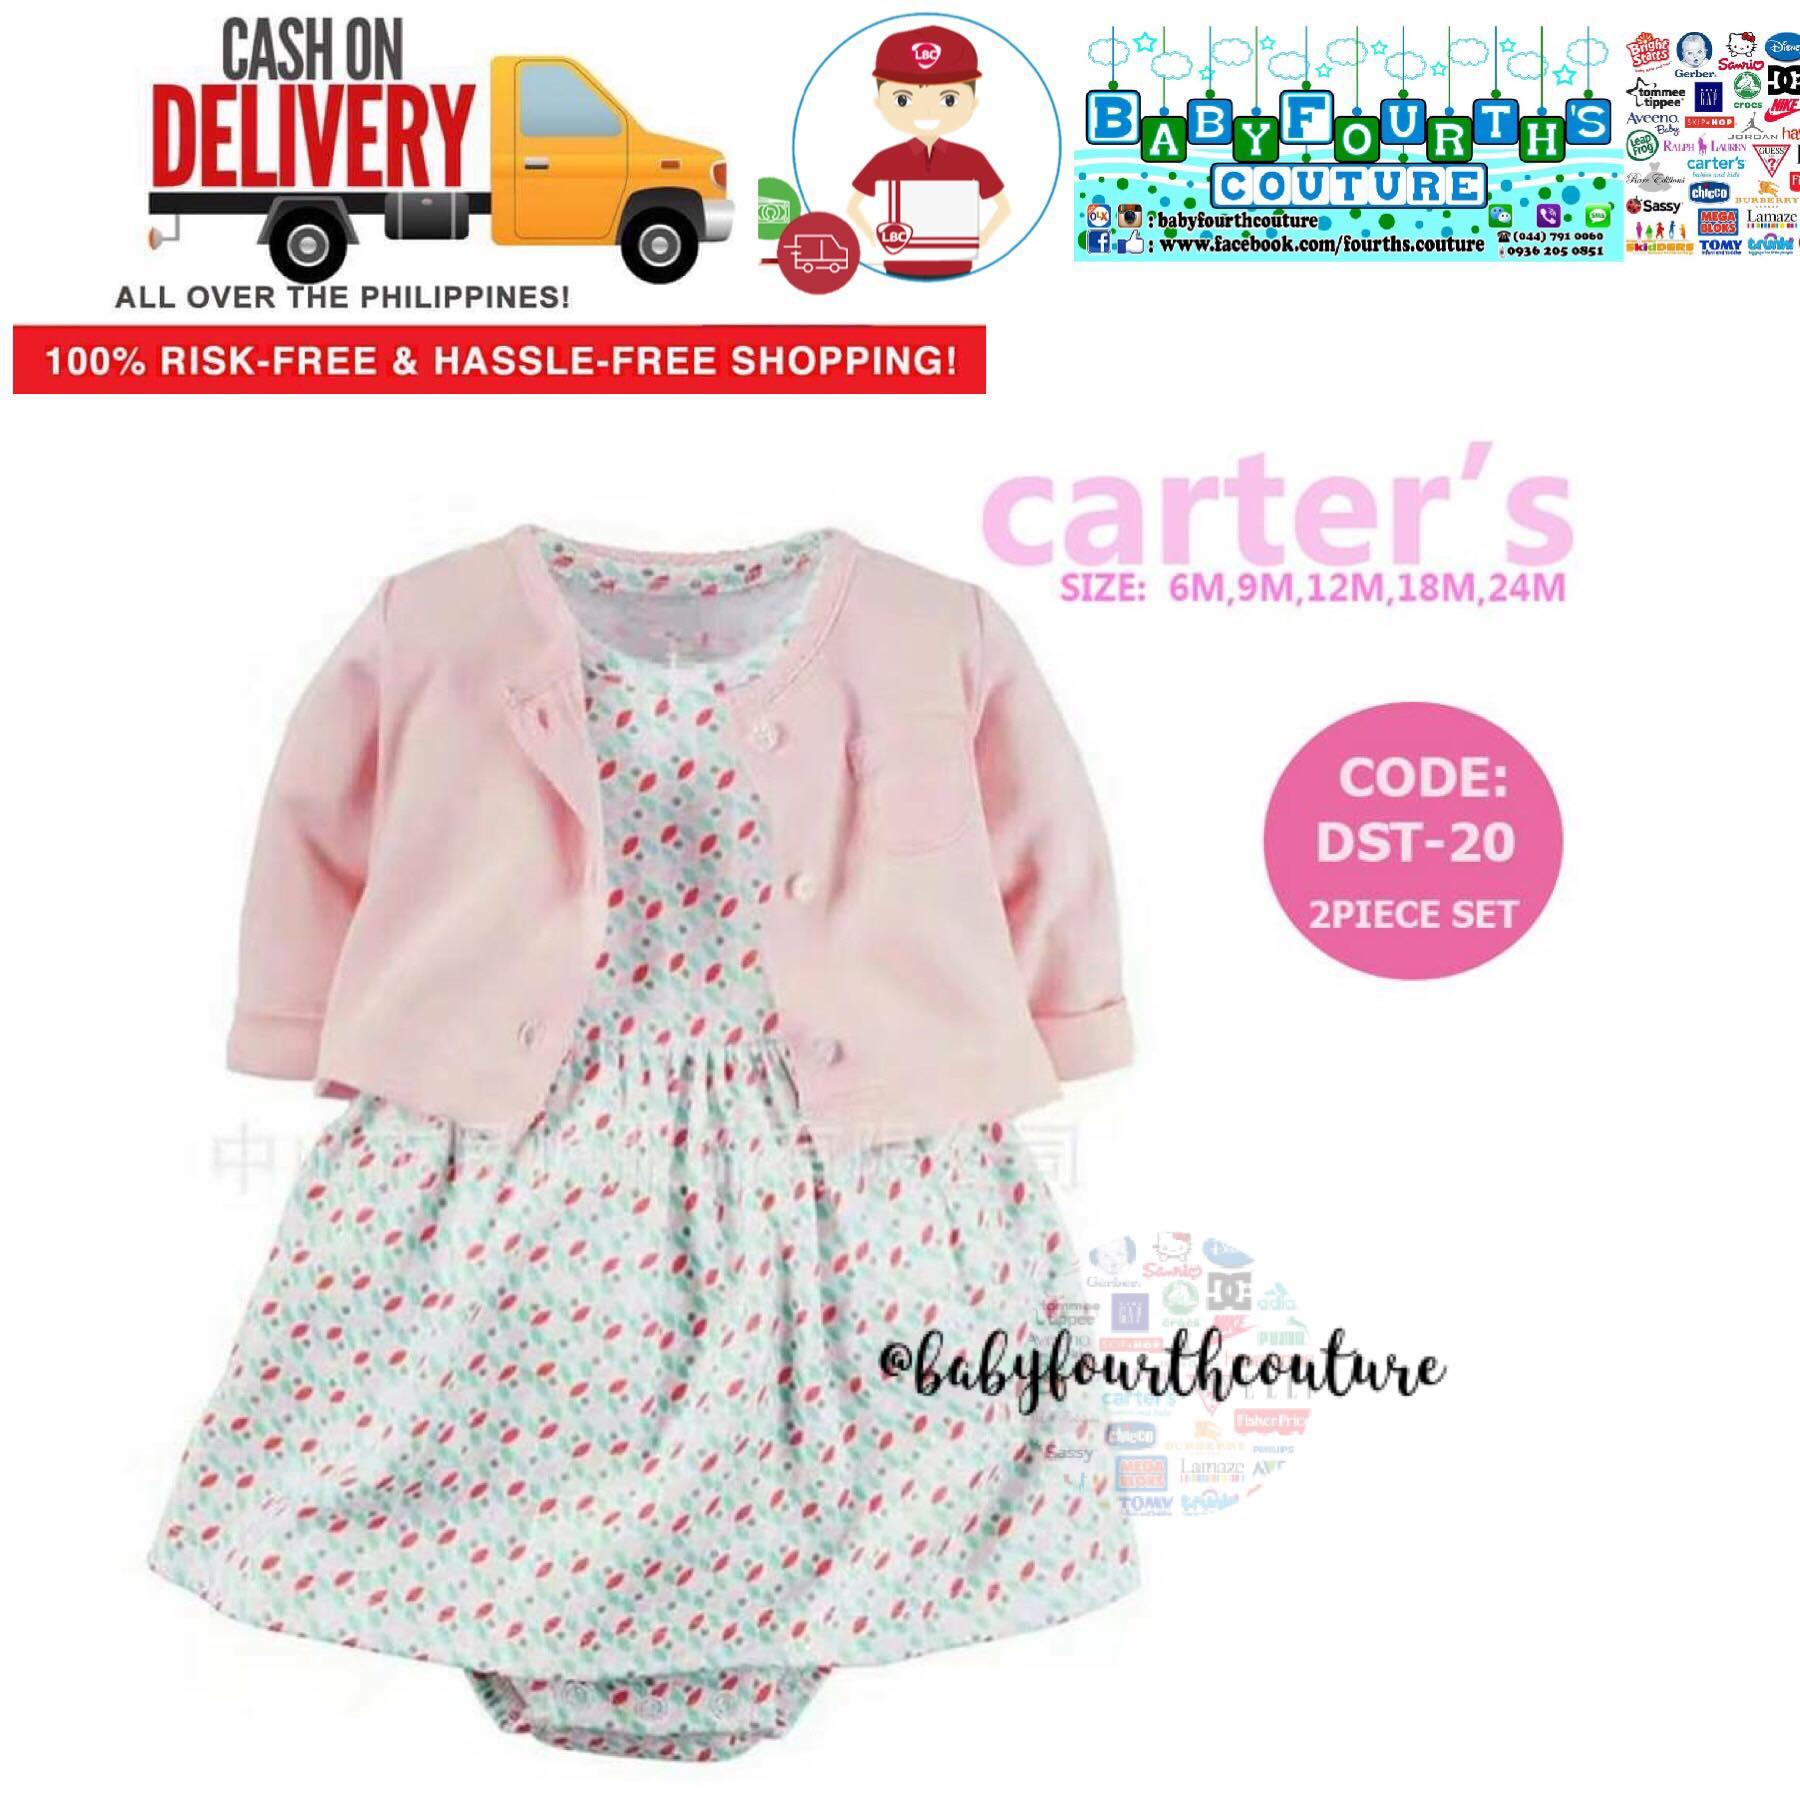 f519b99a2 Carter s Philippines  Carter s price list - Clothing for sale